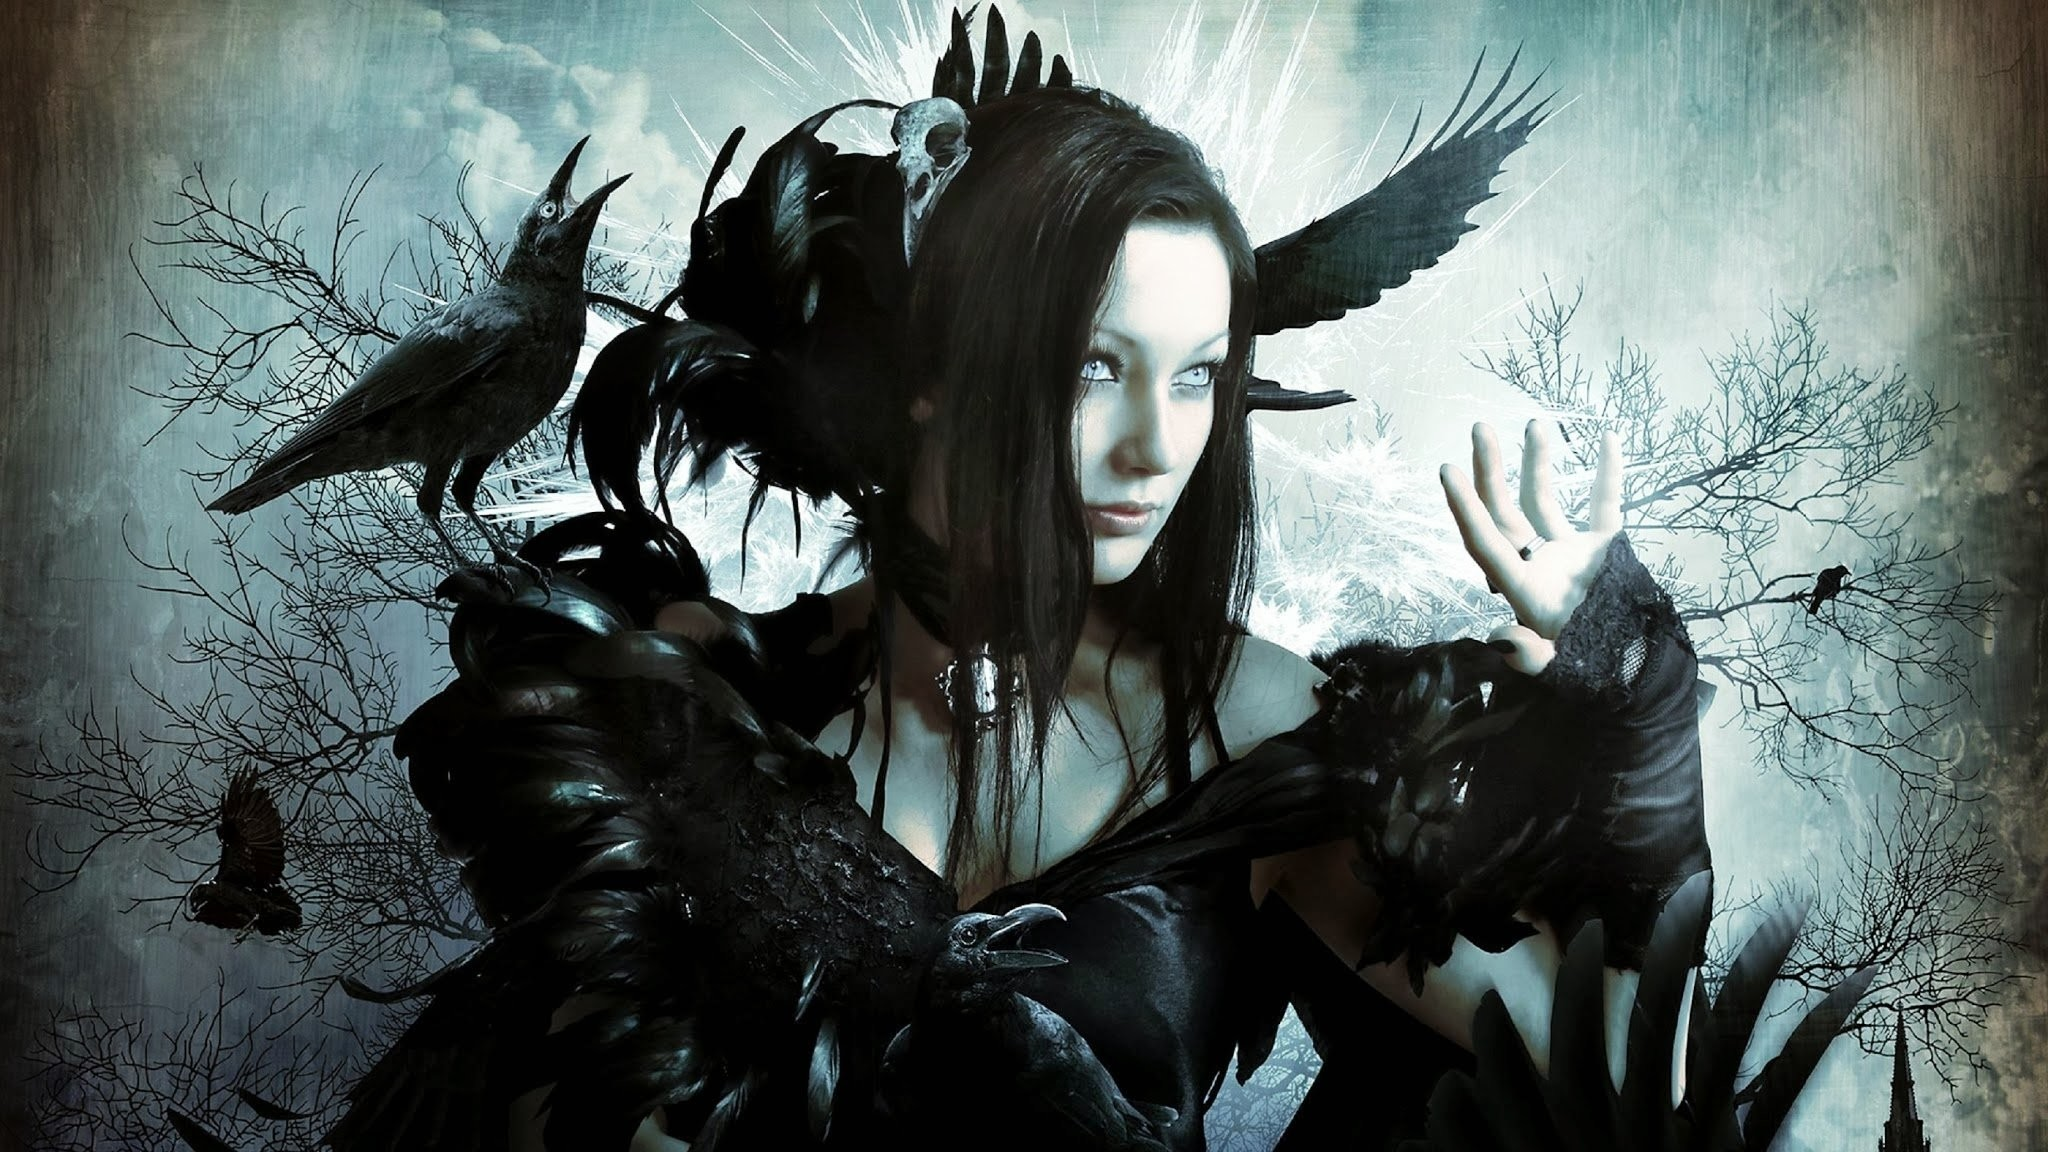 Res: 2048x1152, Dark emo gothic fetish girl girls vampire cyber goth wallpaper |   | 800883 | WallpaperUP